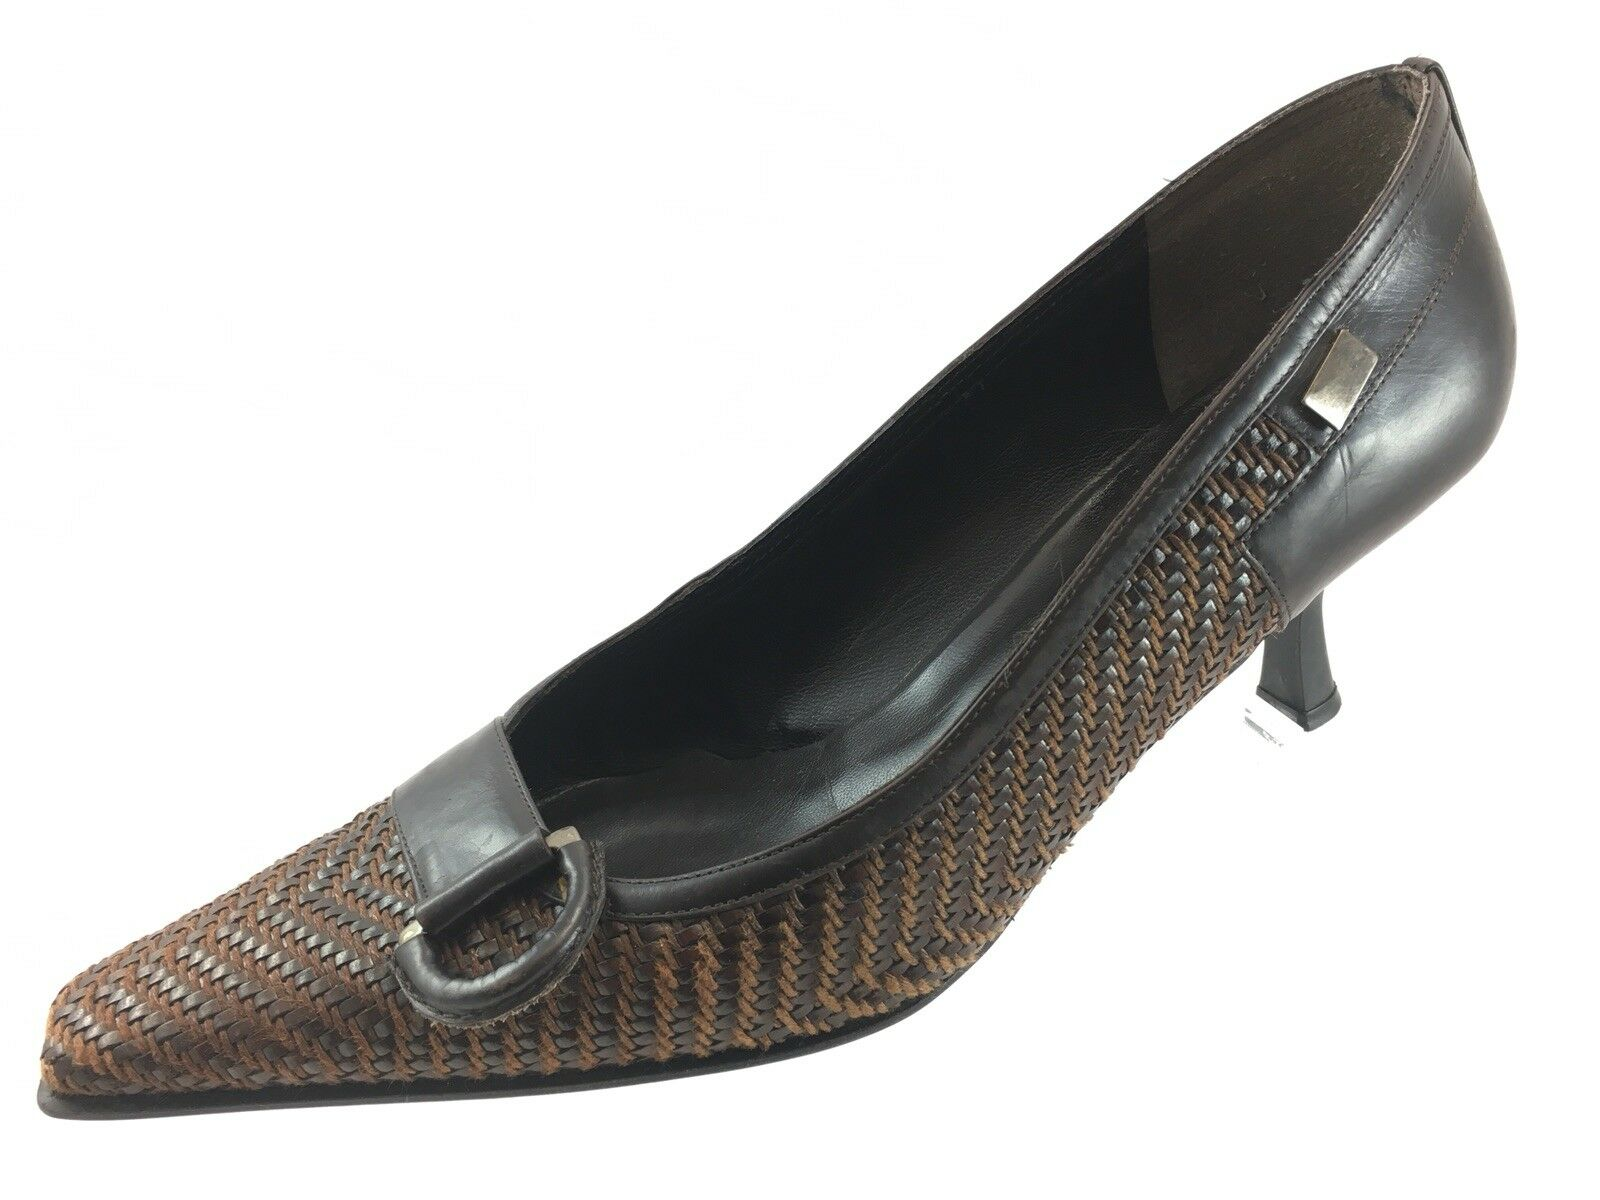 SH3 Stuart Weitzman 9.5M Brown Woven Leather Pumps Heels Pointy Toe Embellished